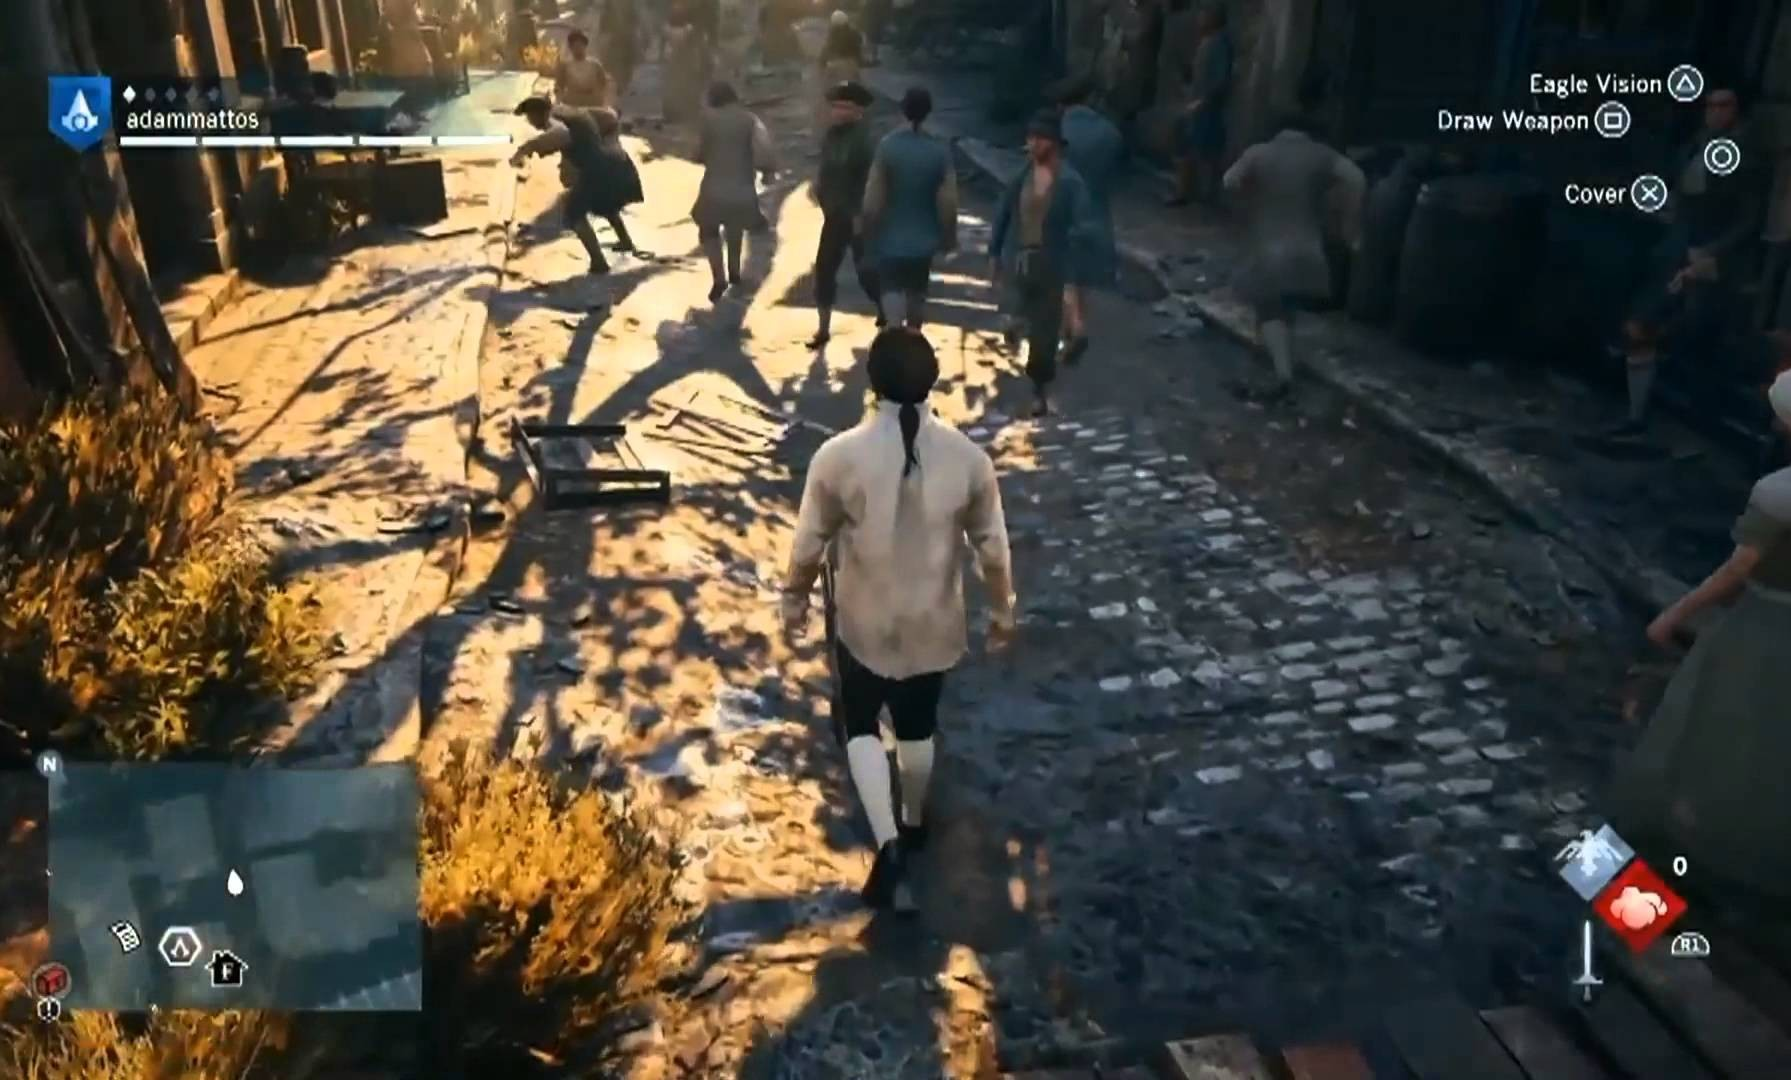 UNA BONITA RECOPILACIÓN DE GLITCHES DE ASSASSIN'S CREED: UNITY